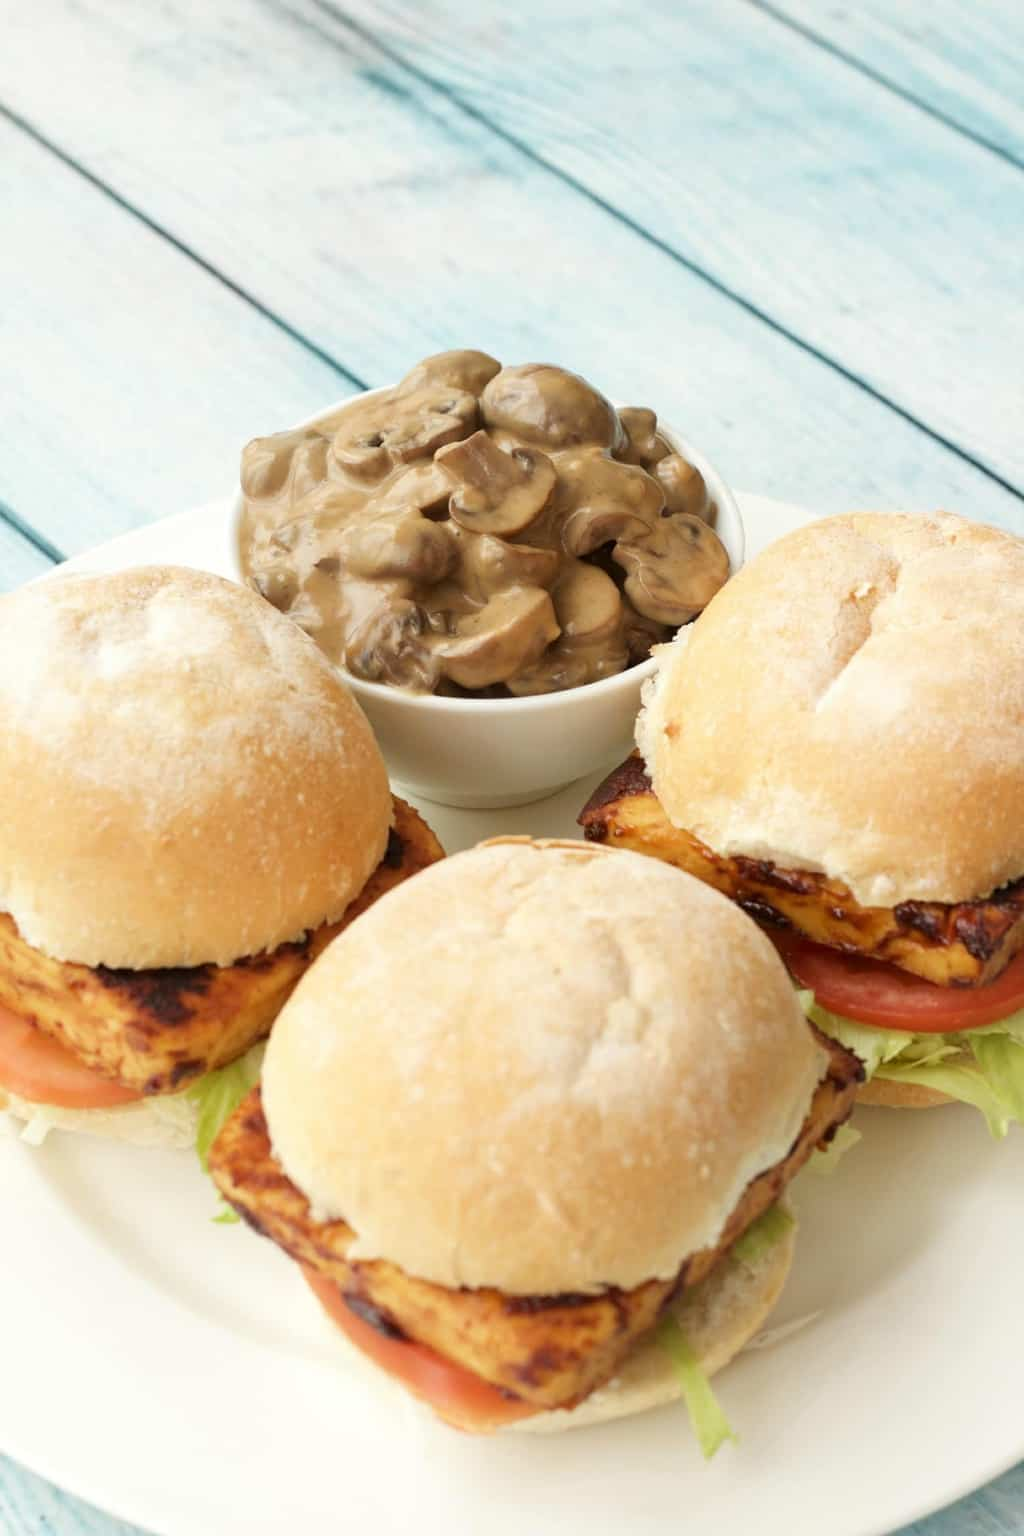 Three tofu burgers and a bowl of mushroom sauce on a white plate.